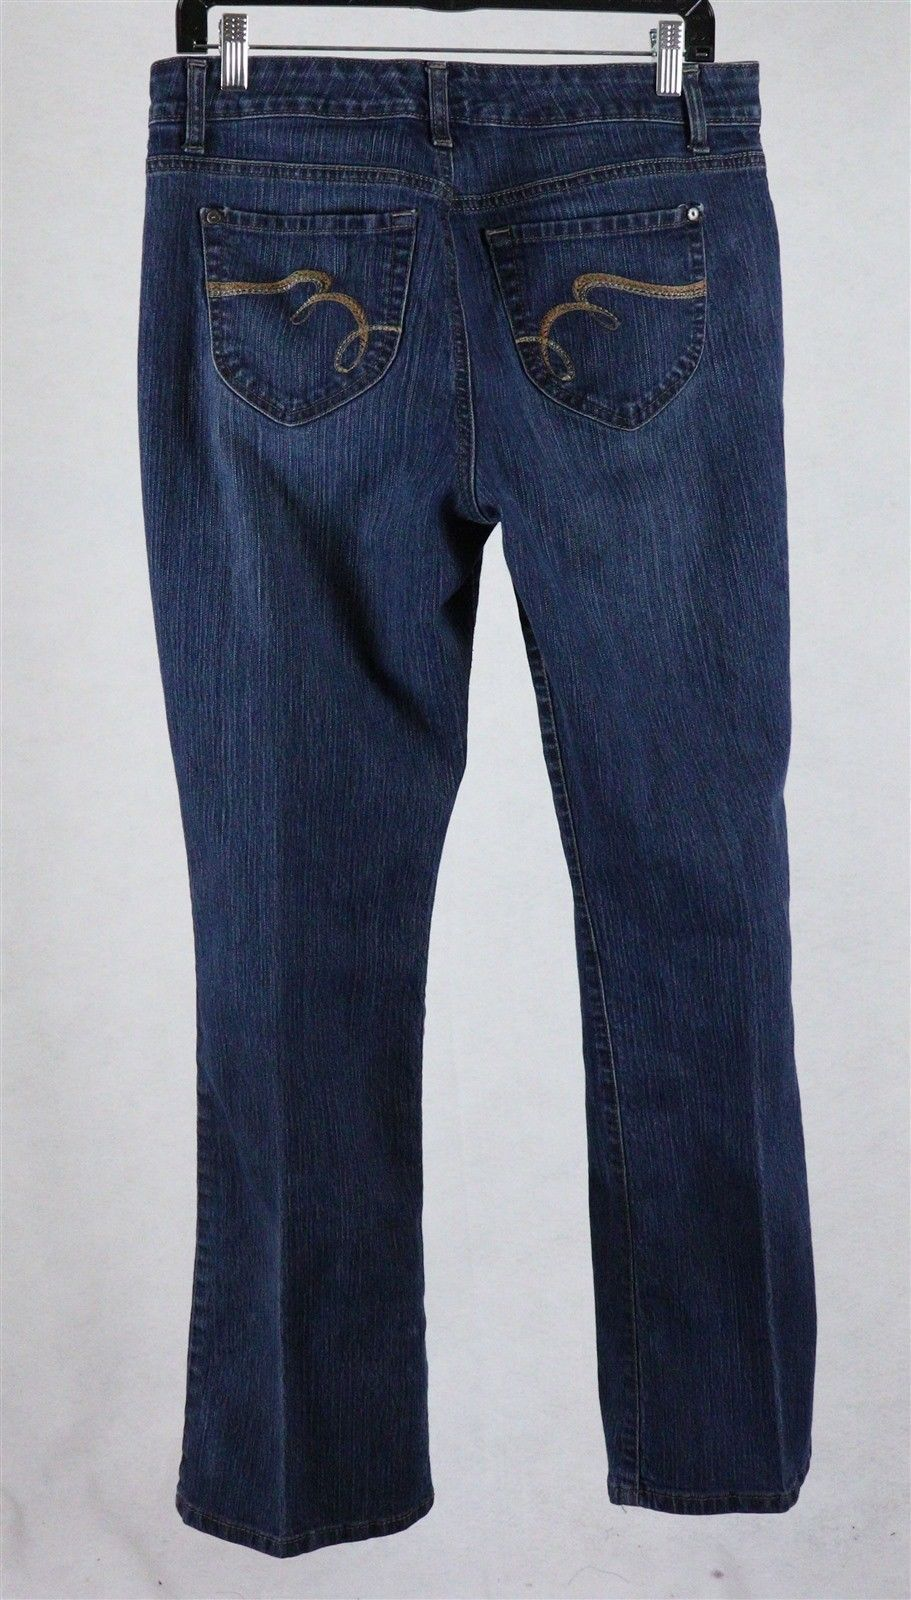 Nine West Womens Denim Jeans Size 8 28